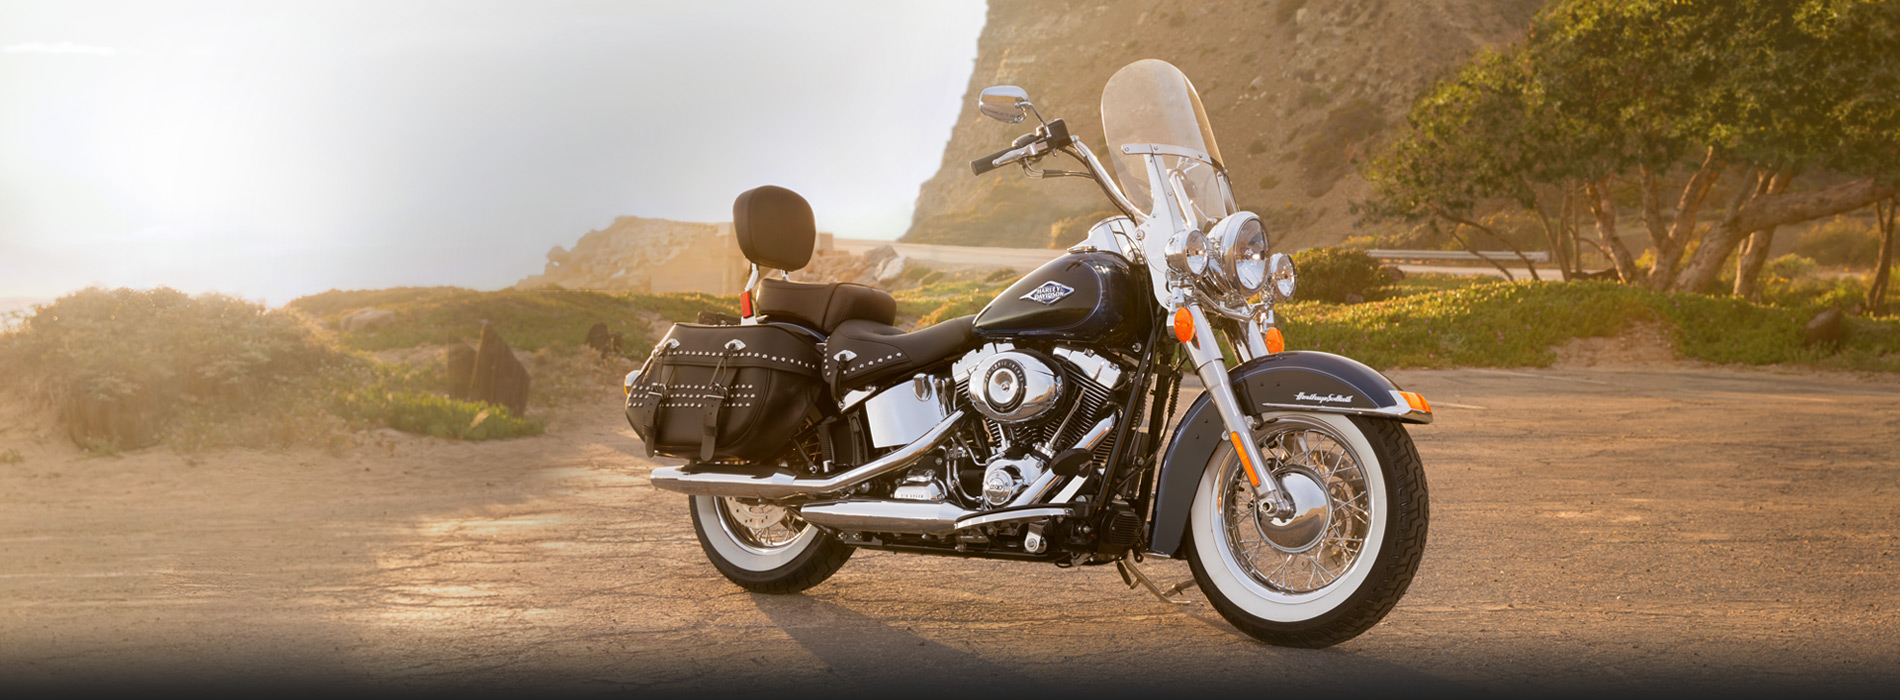 Harley-Davidson Heritage Softail Classic 2014 #2